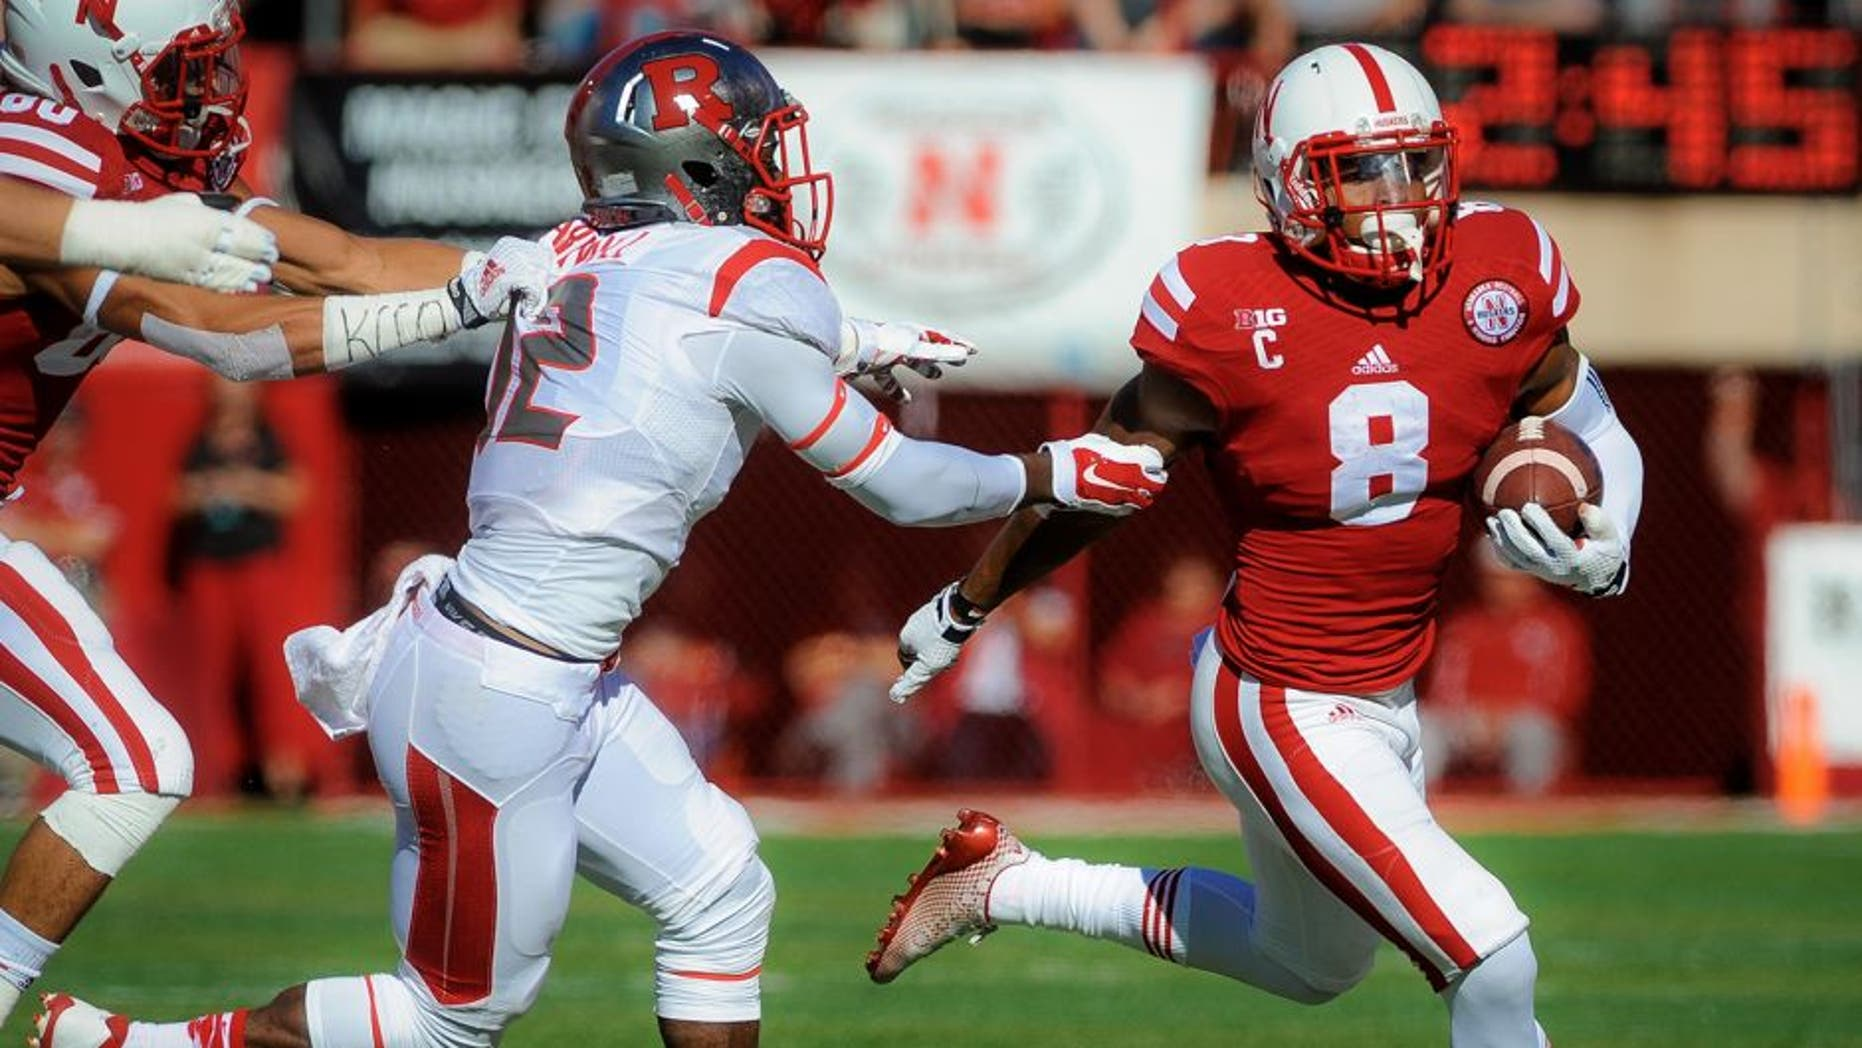 LINCOLN, NE - OCTOBER 25: Running back Ameer Abdullah #8 of the Nebraska Cornhuskers runs past defensive back Nadir Barnwell #12 of the Rutgers Scarlet Knights during their game at Memorial Stadium on October 25, 2014 in Lincoln, Nebraska. (Photo by Eric Francis/Getty Images)